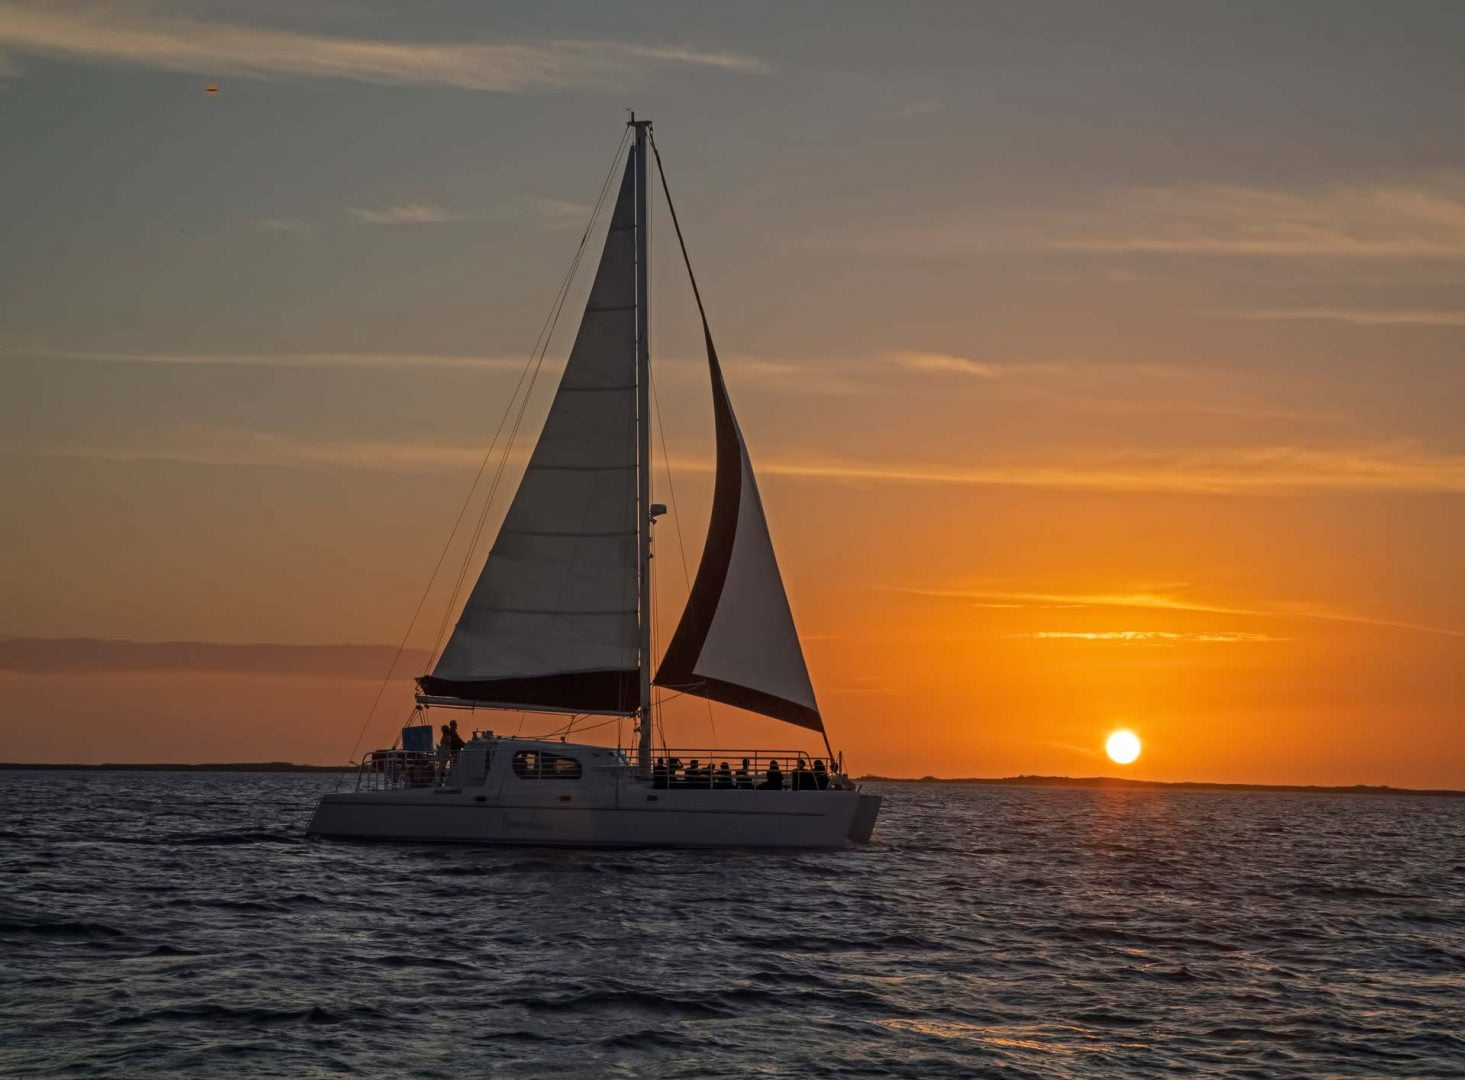 Lady B sailboat out on the open water at sunset